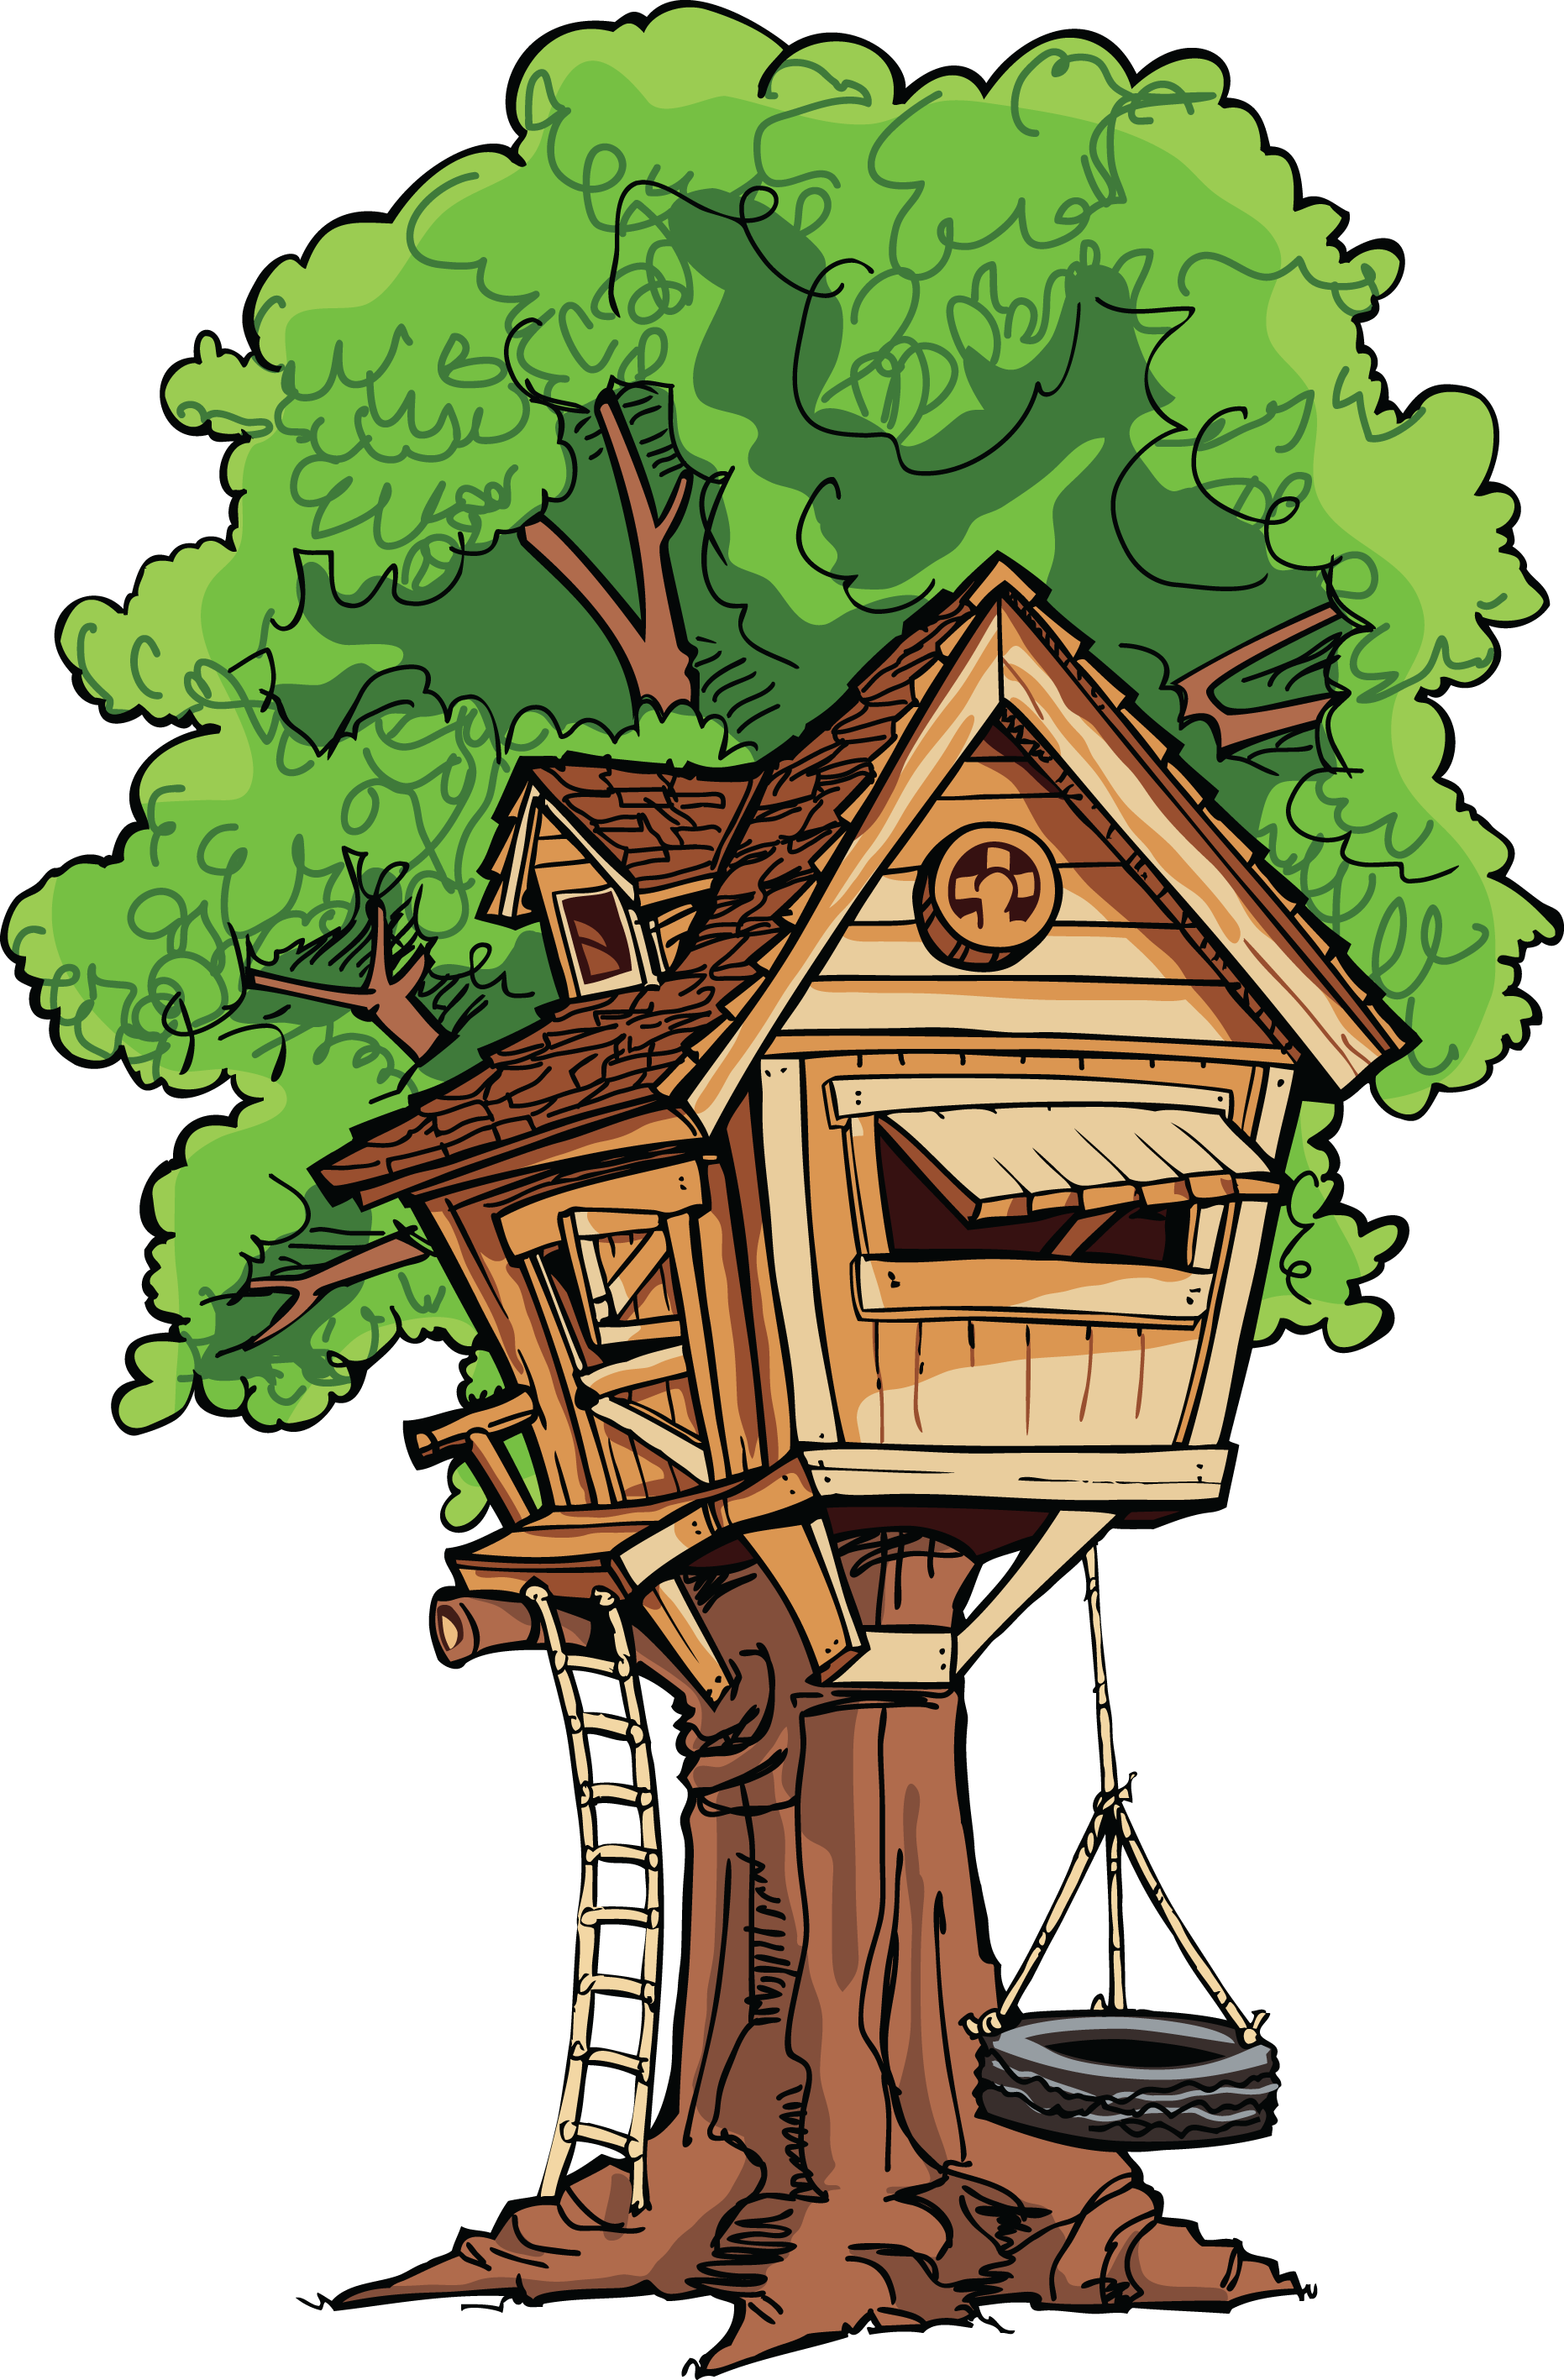 Tree swing clipart image black and white Tree House Clip Art | When you go into the creative world you have ... image black and white